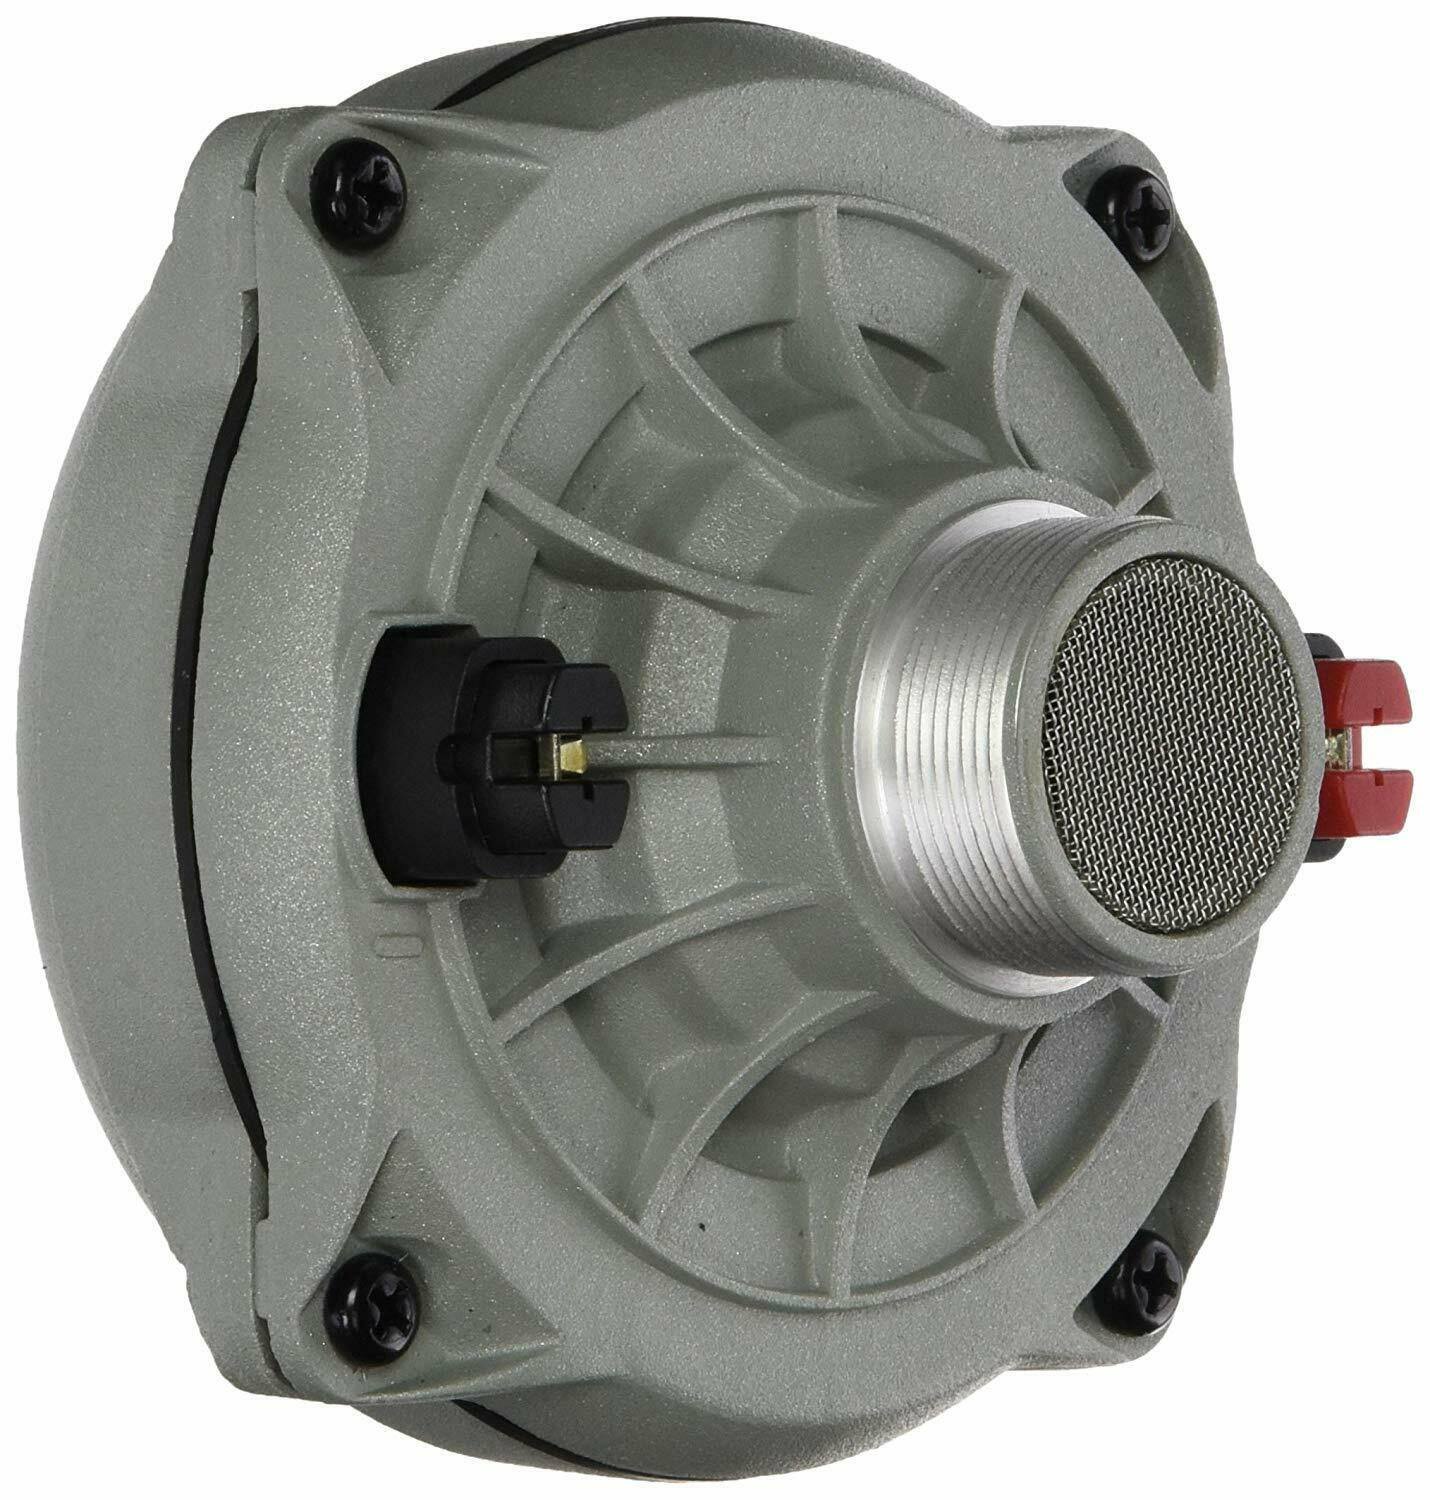 Pyle PDS432 High Power Car Audio Tweeter Compression Horn Driver, 500 Watts